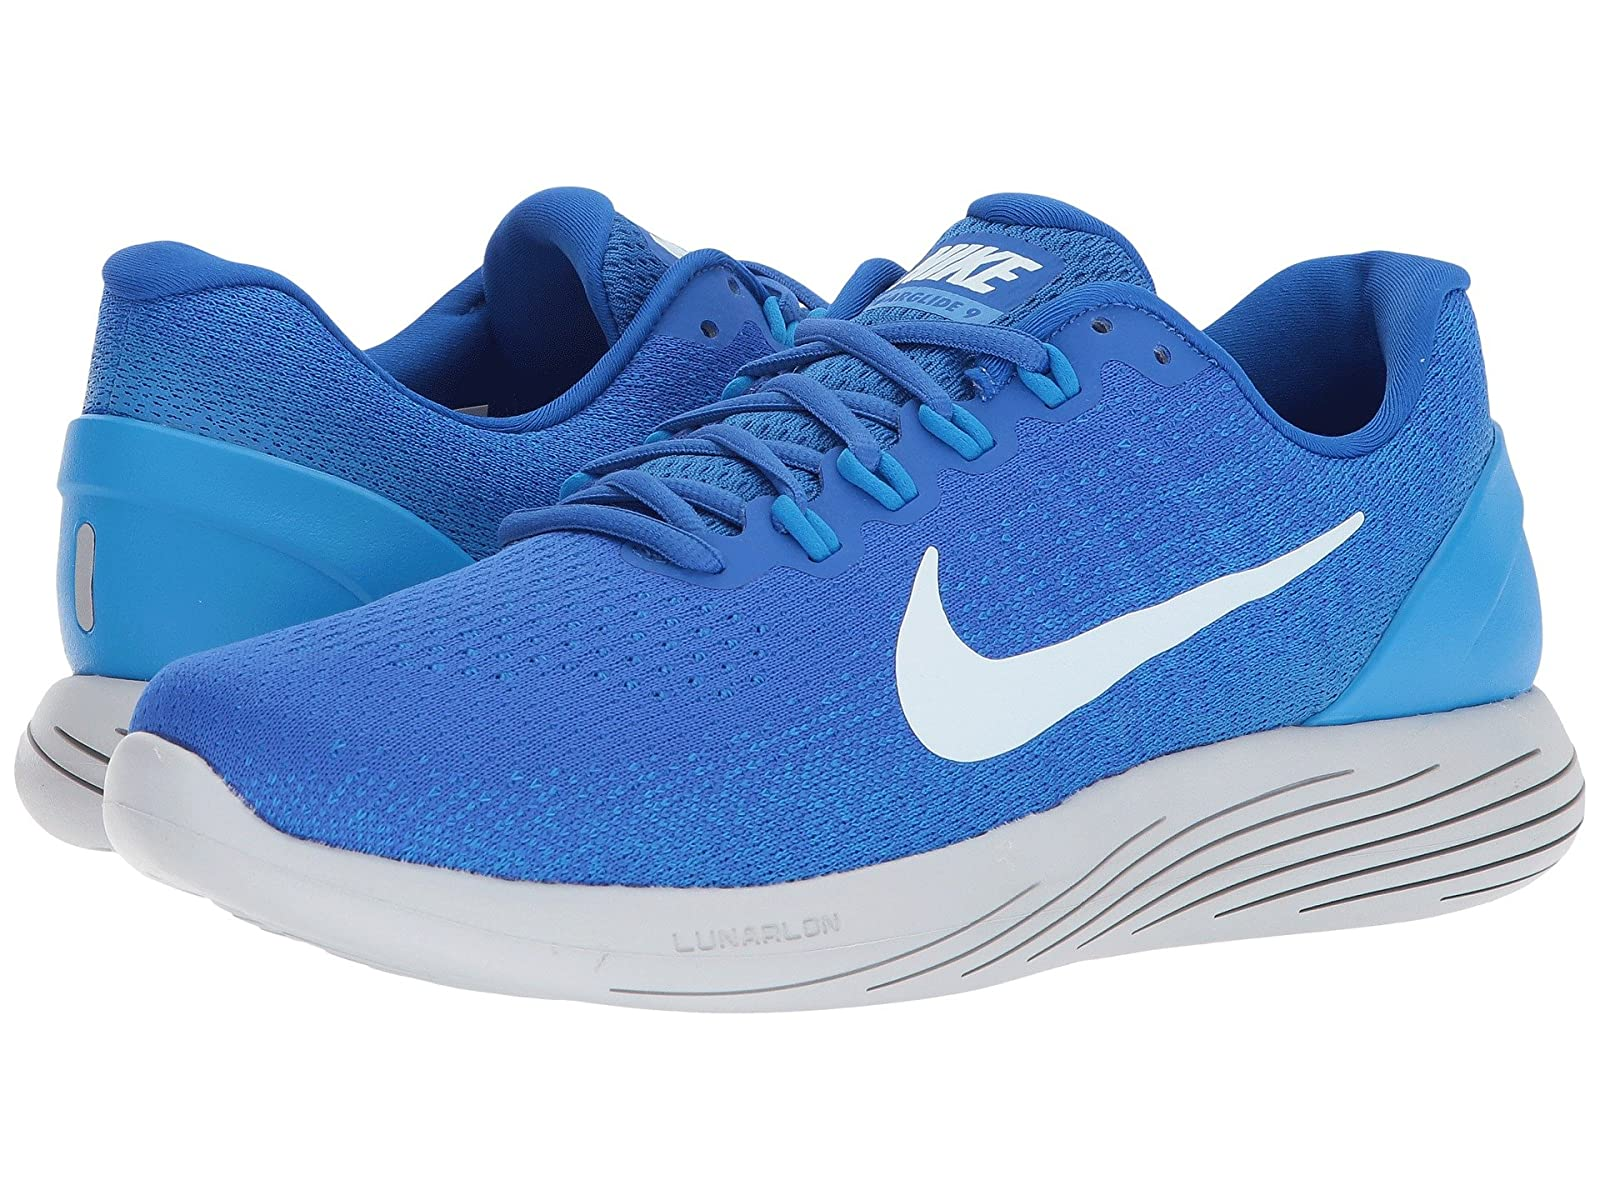 Nike LunarGlide 9Atmospheric grades have affordable shoes